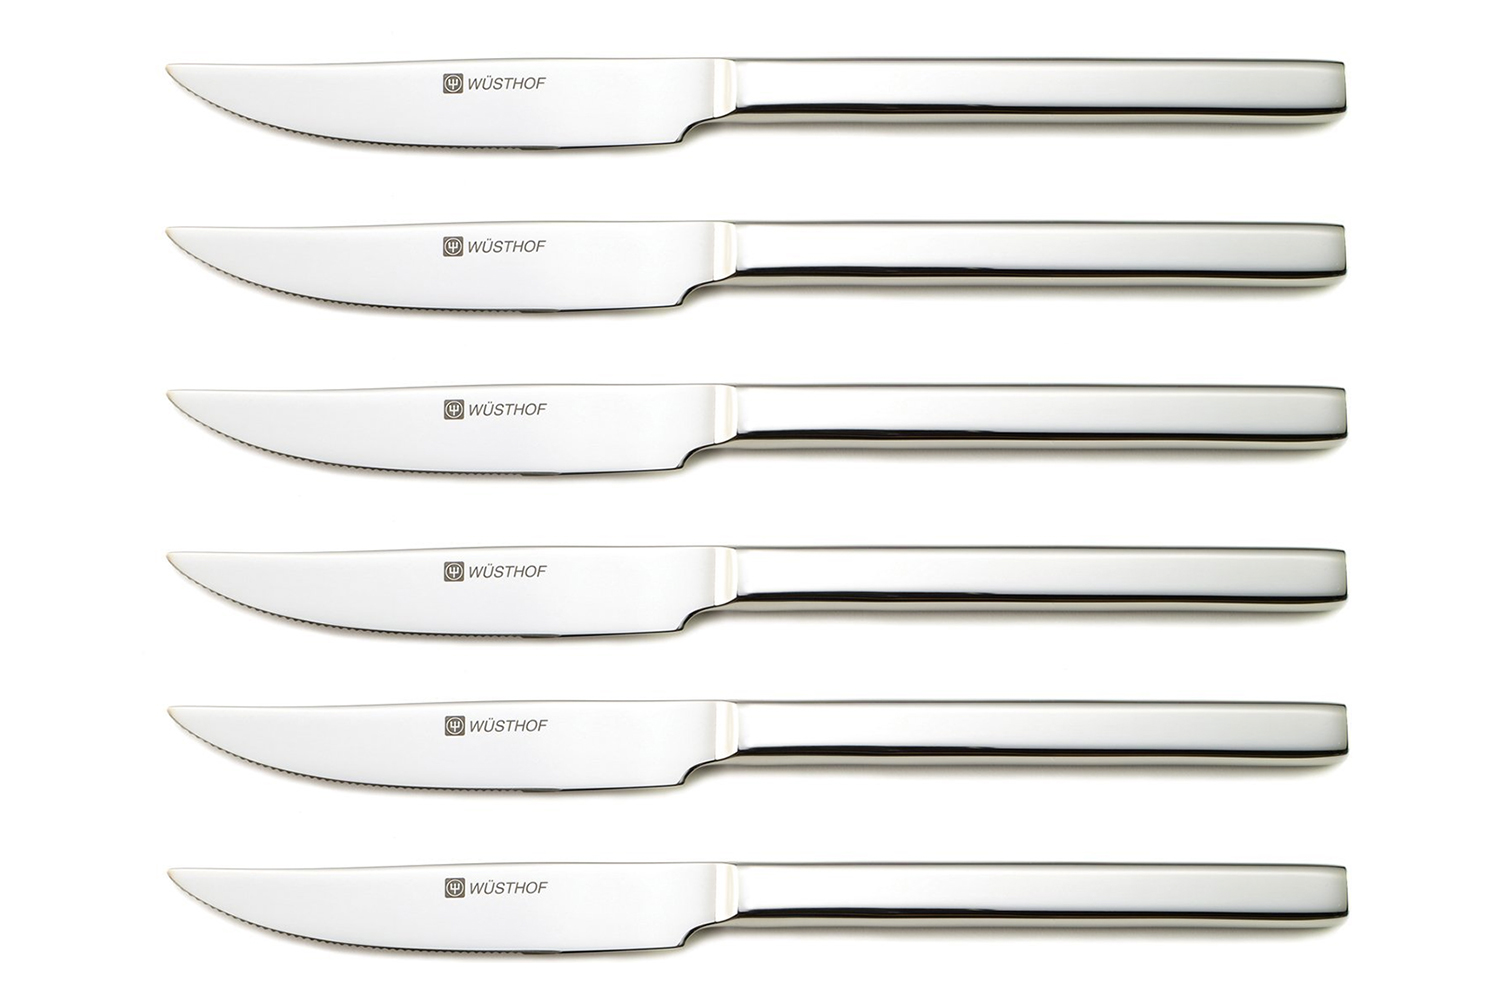 Wusthof 6 Piece Stainless Steak Knife Set